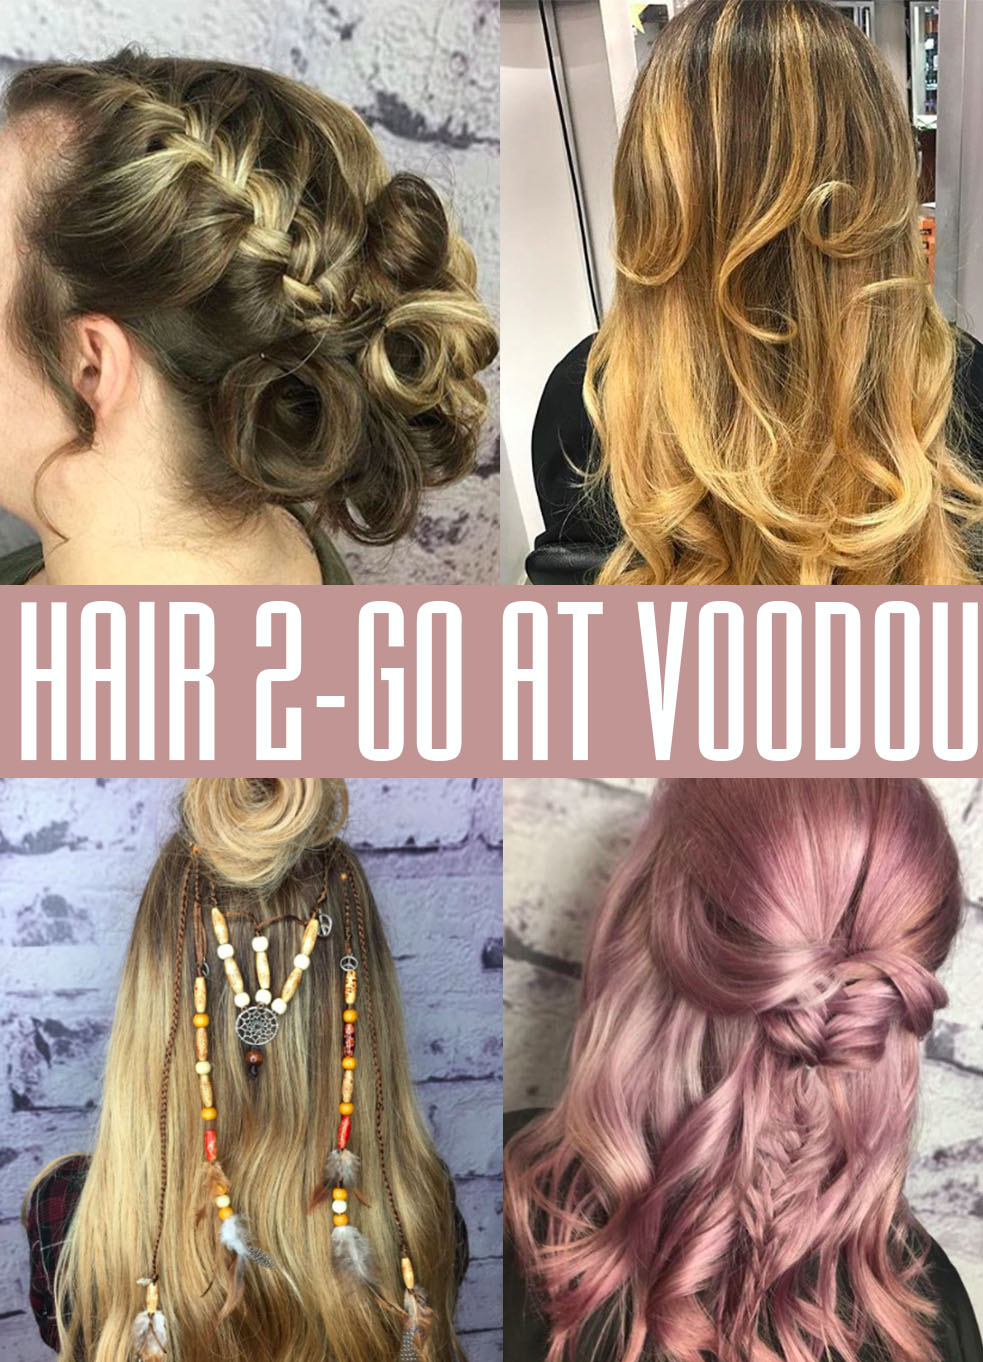 Hair 2-Go at Voodou